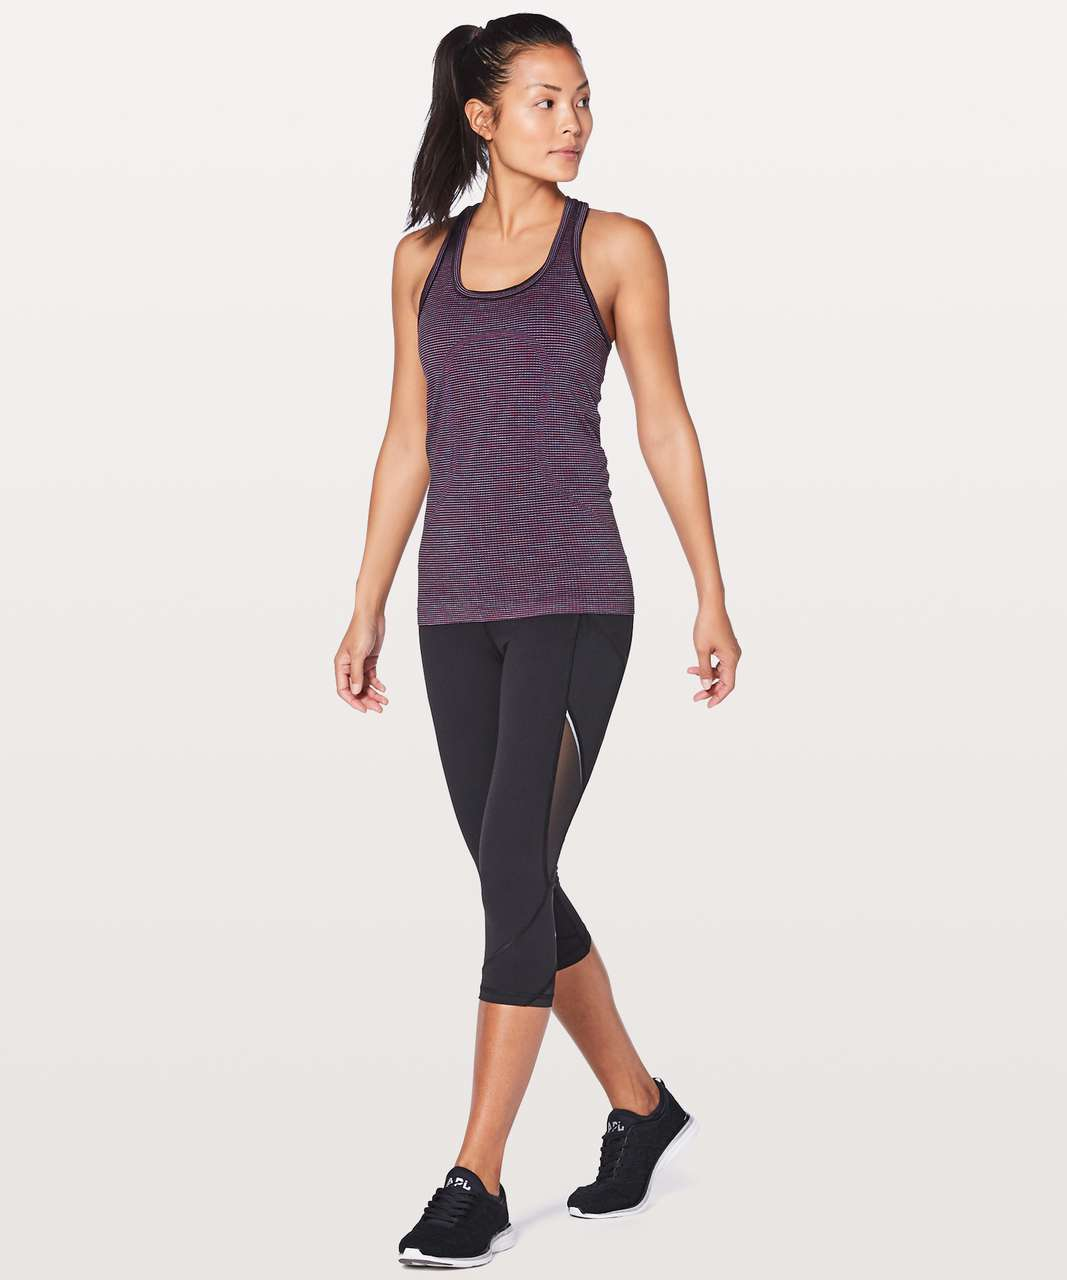 Lululemon Swiftly Tech Racerback - Pink Paradise / Black / Lavender / Blue